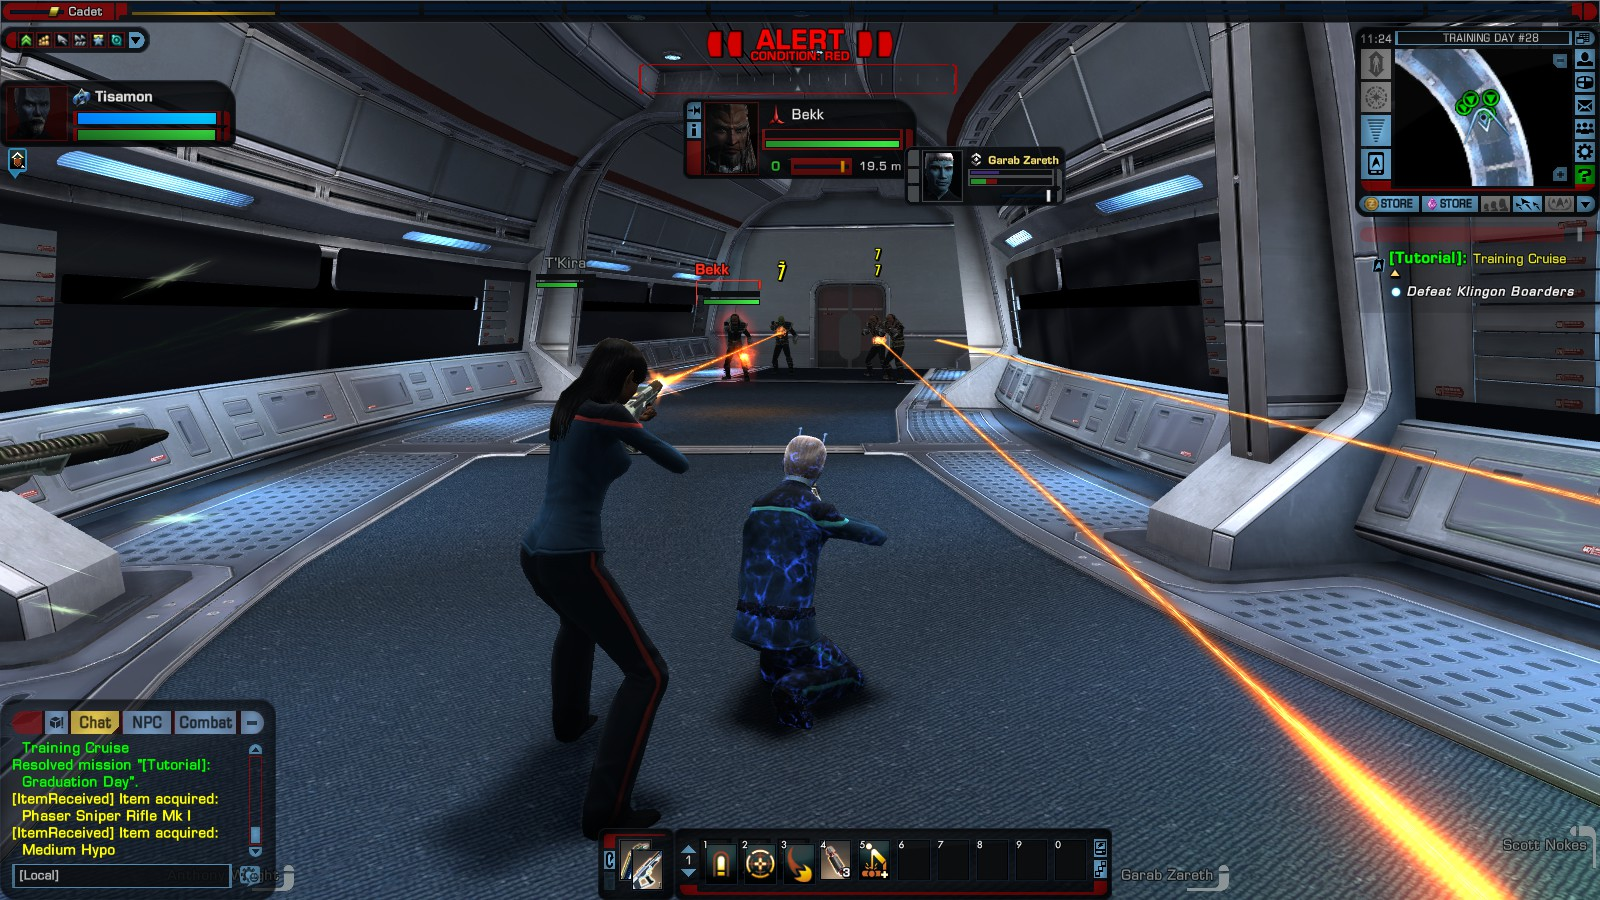 A boarding party during a mission in Star Trek: Online